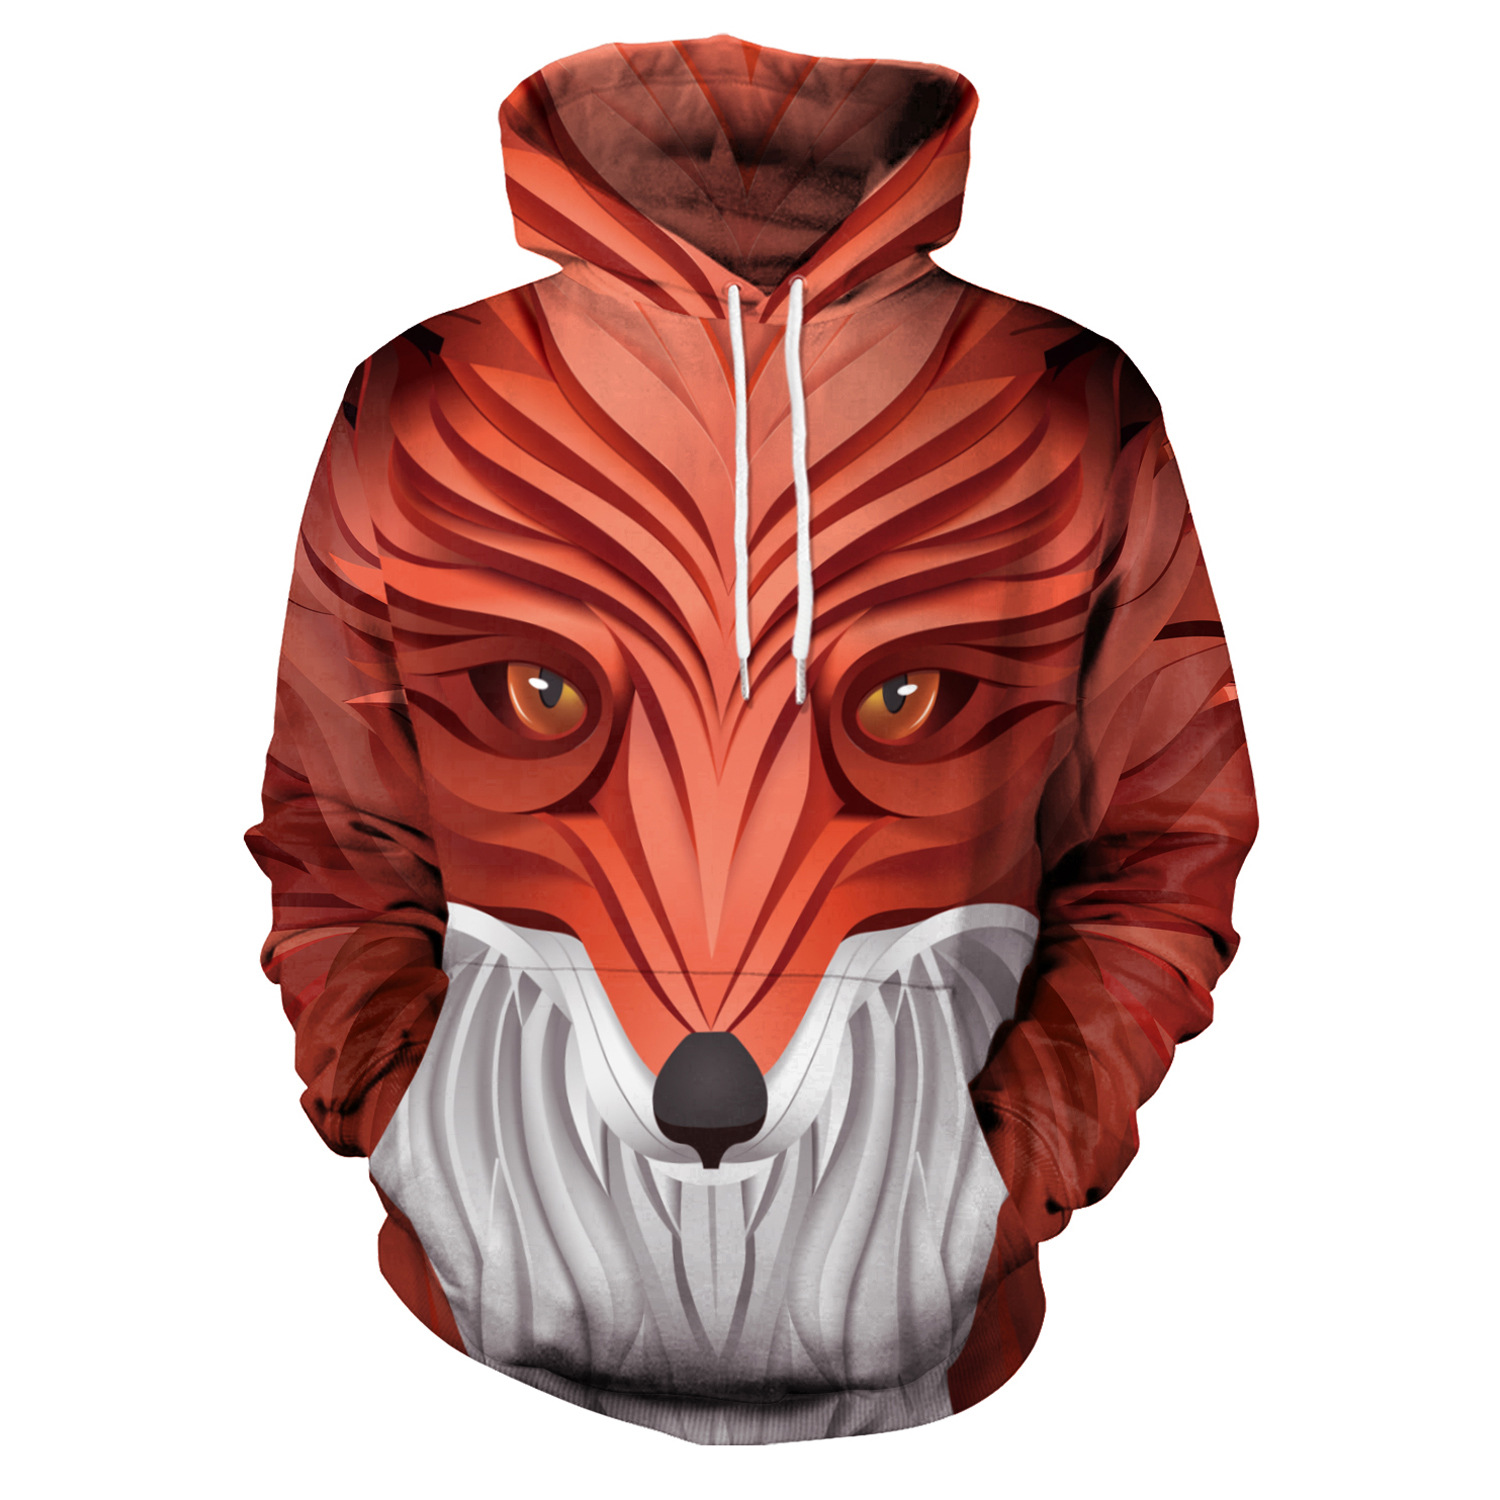 Men Hoodies Realistic Fox Head 3D Print Hoodies Men Hoodie Loose Long Sleeve Hooded Sweatshirt Streetwear Sudaderas Para Hombre